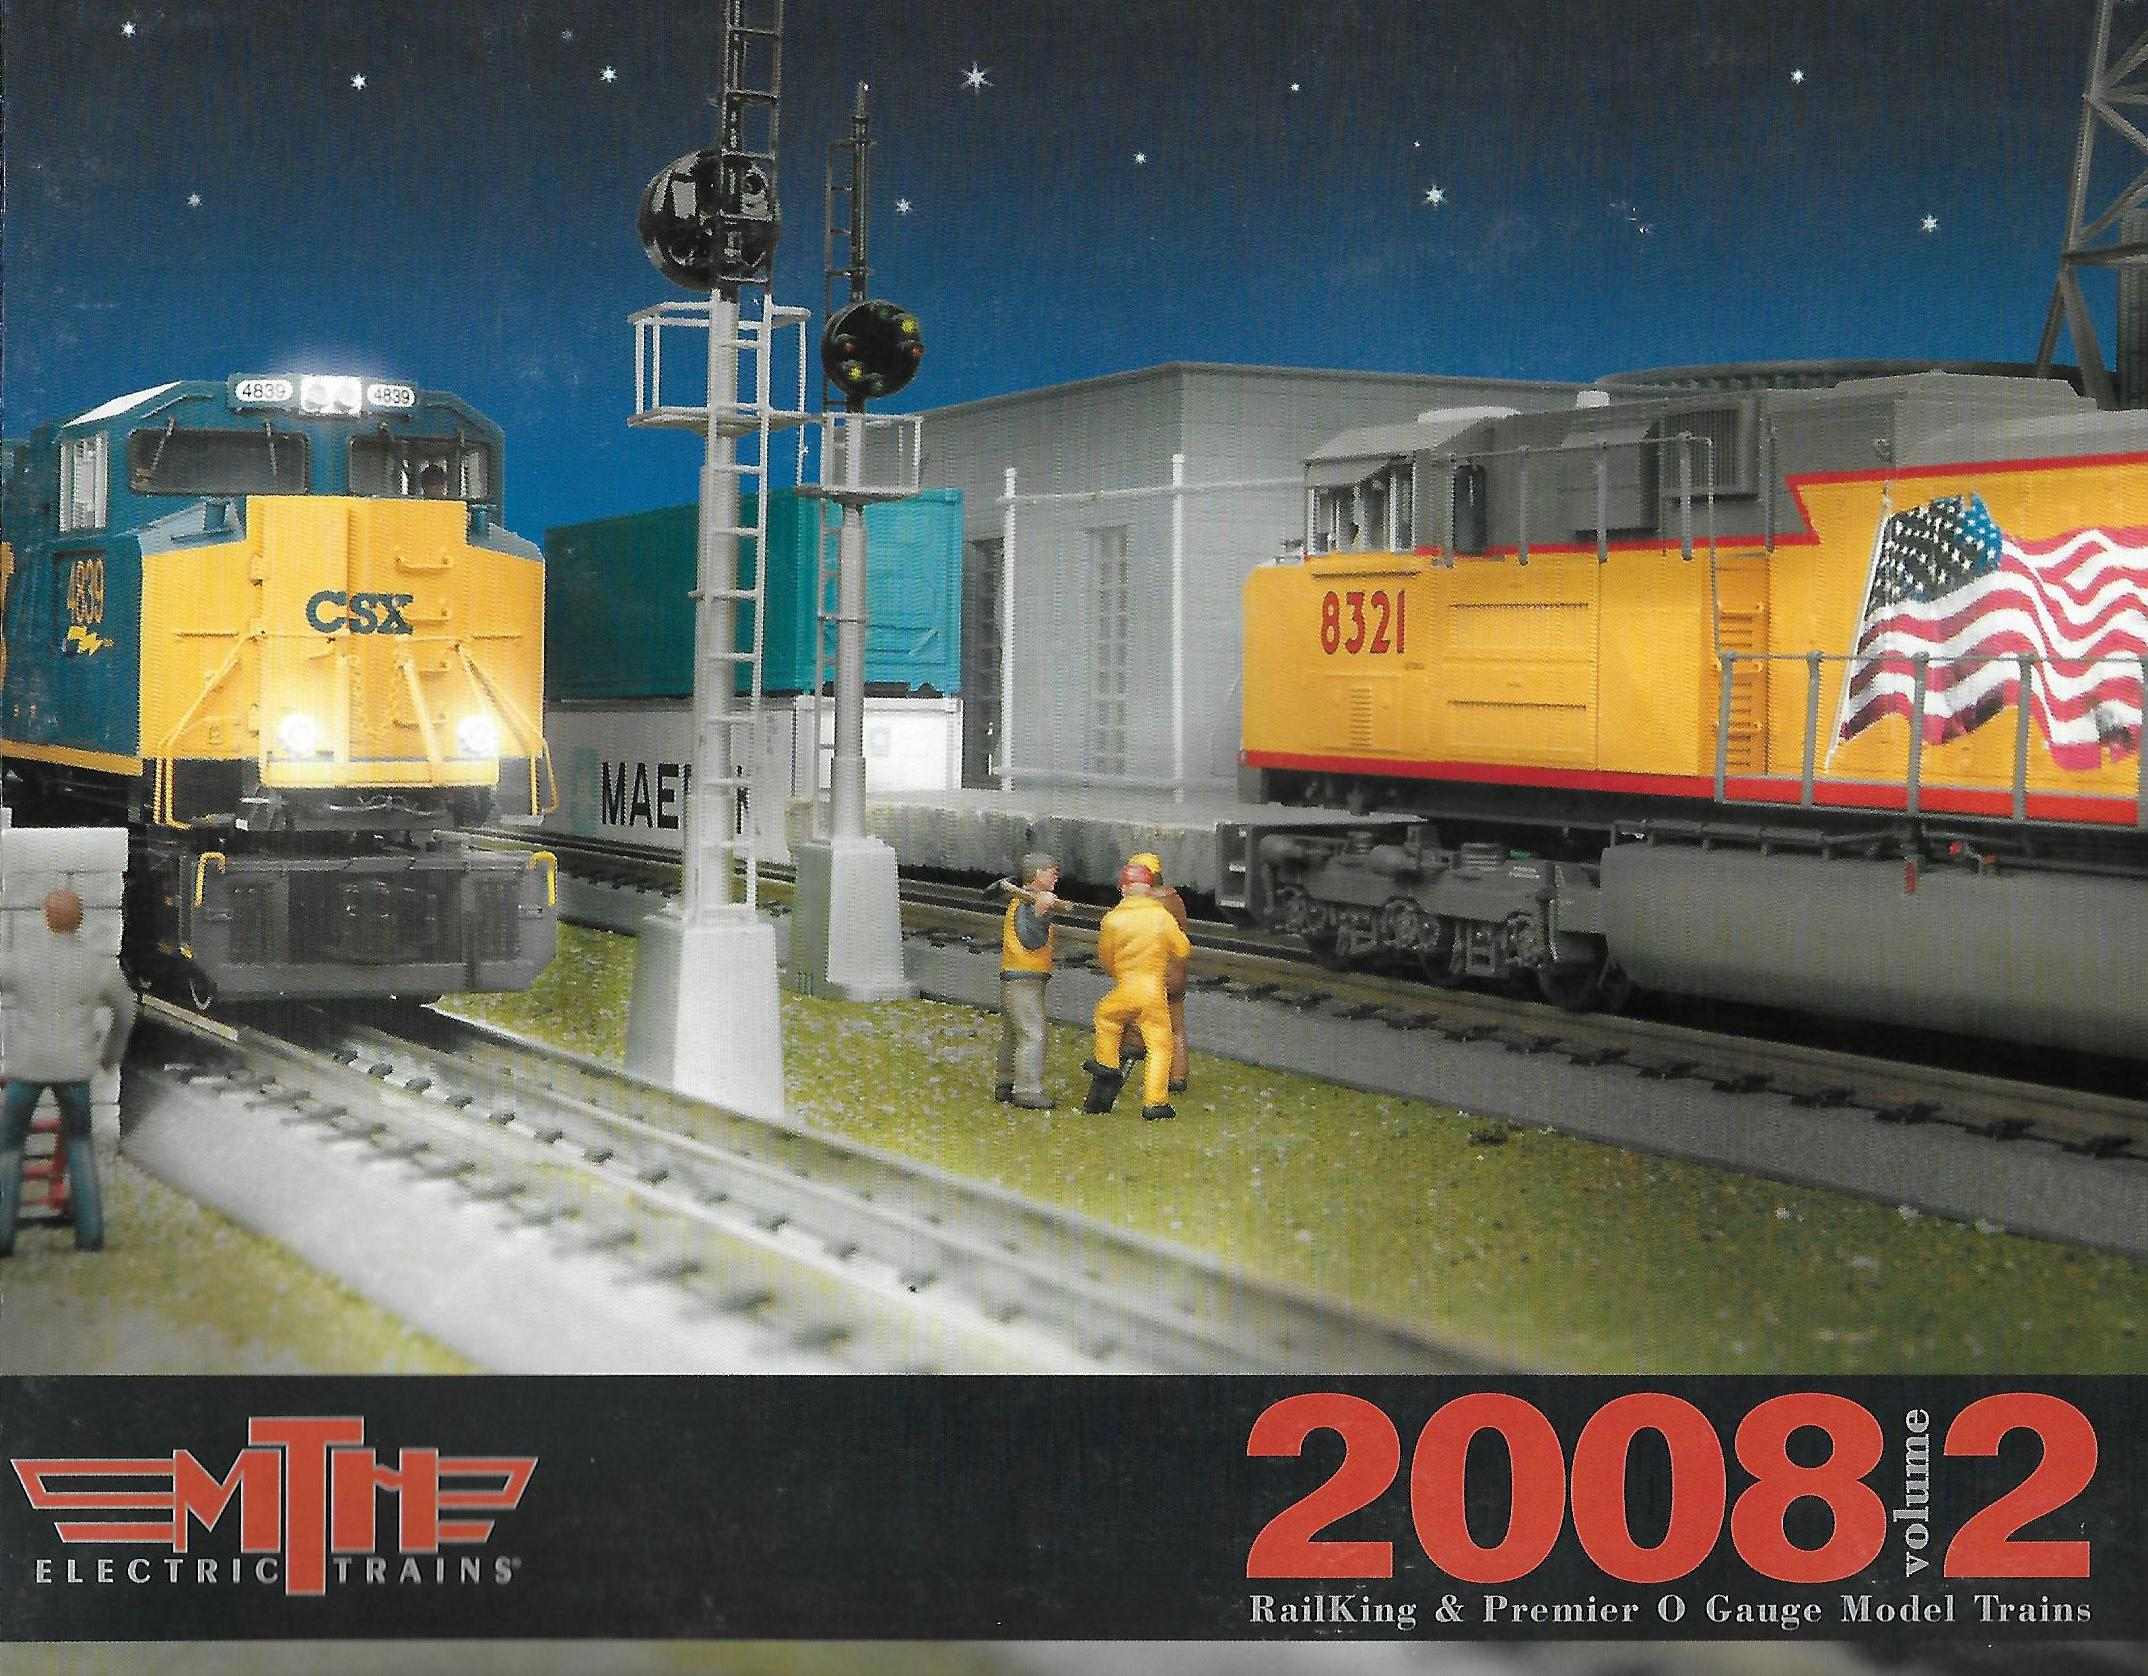 MTH 2008 Volume 2 Catalog image